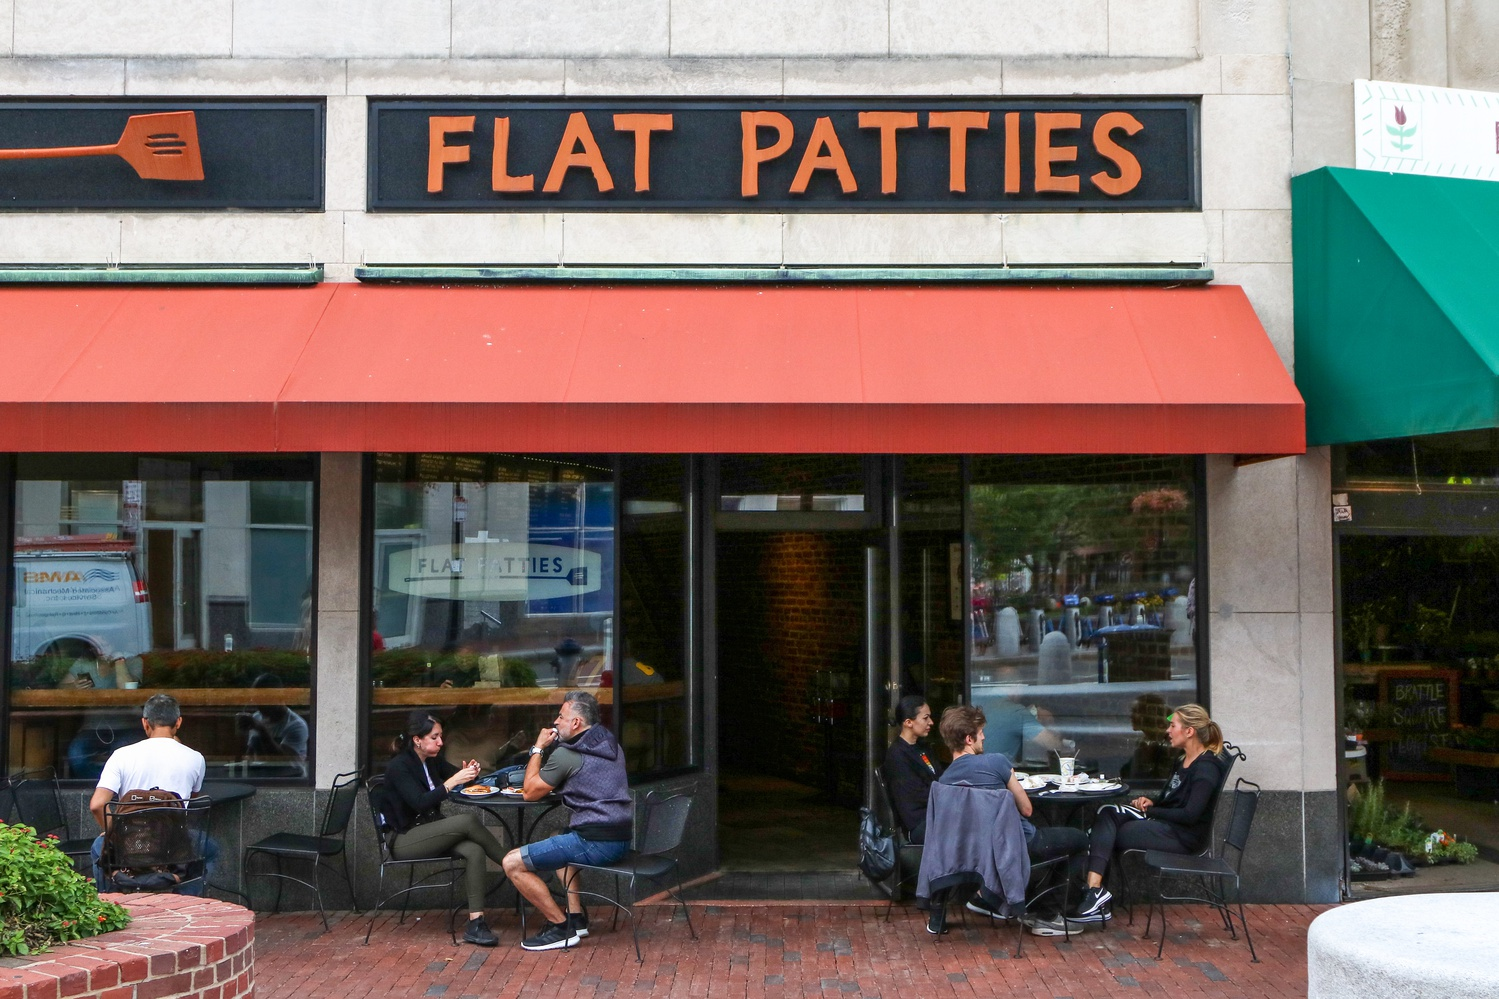 Flat Patties, a local burger restaurant in Harvard Square, is scheduled to close by the end of 2019.